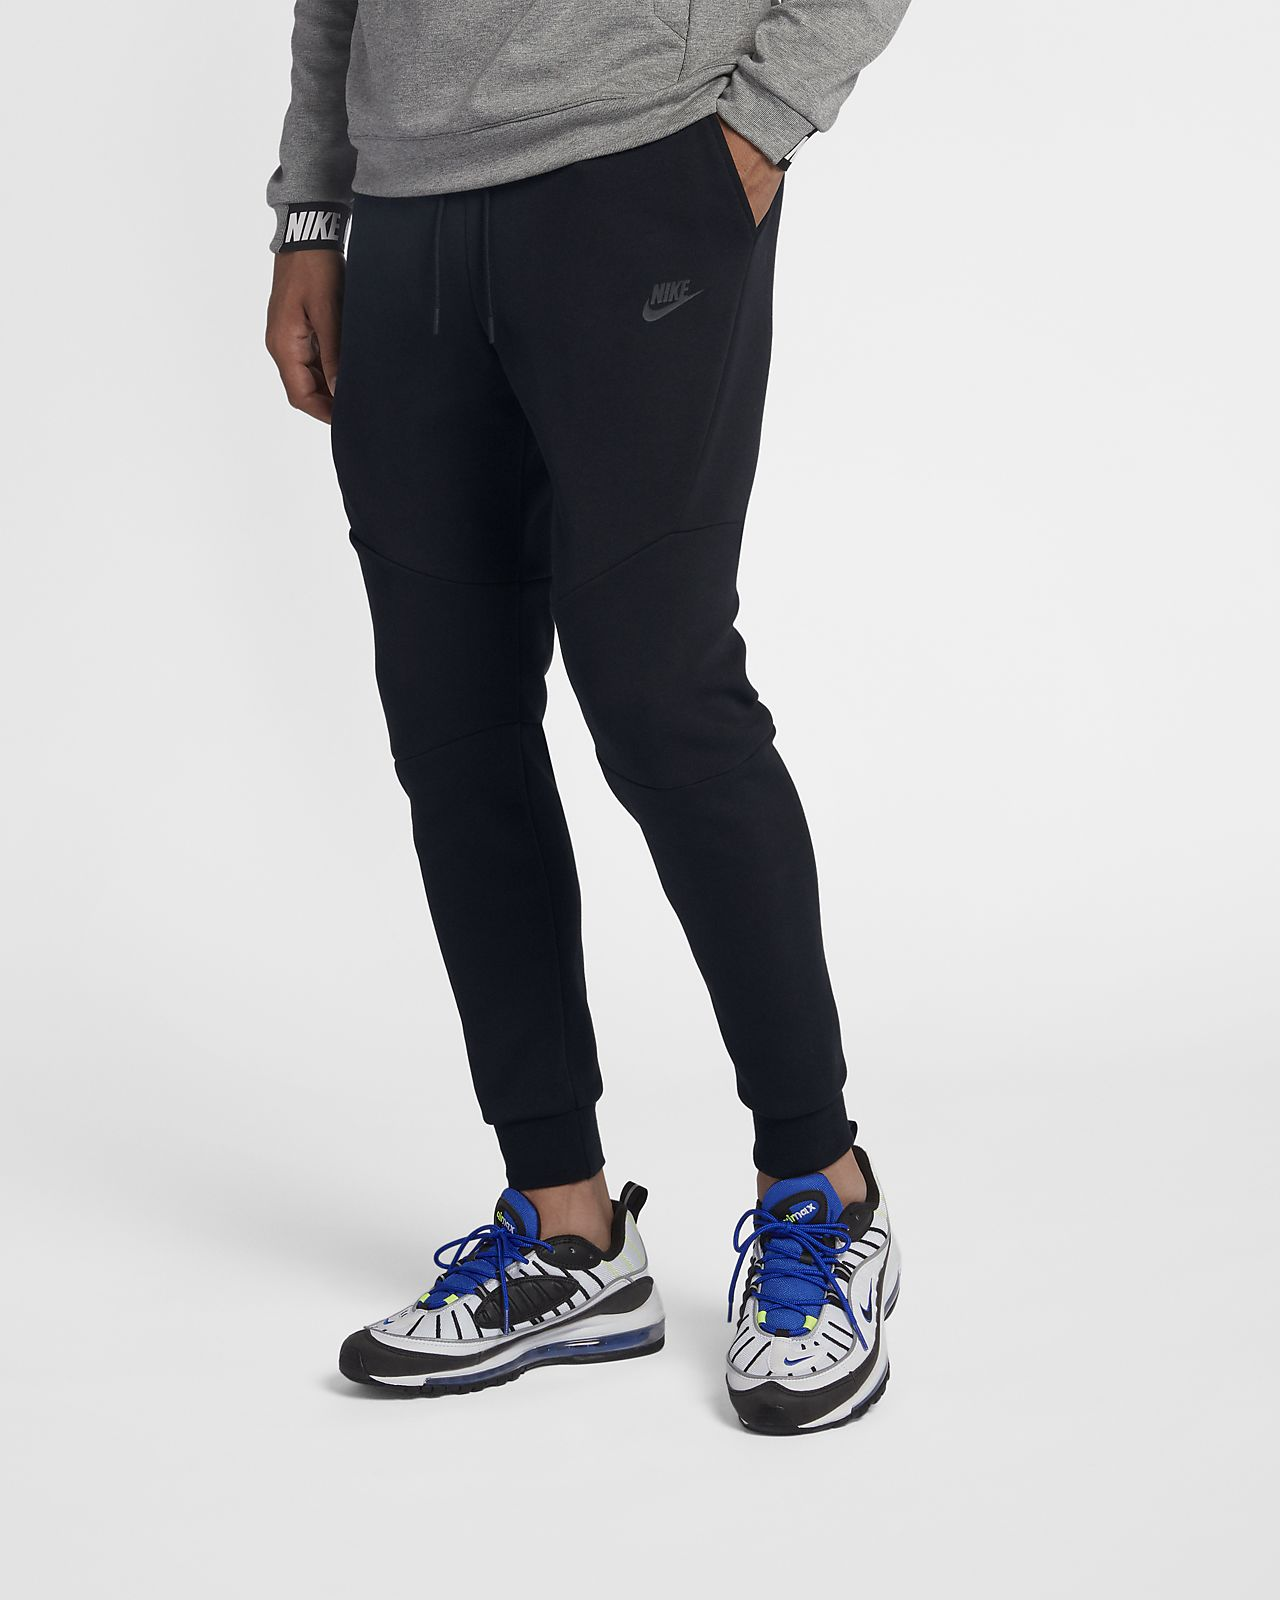 jogging nike homme ensemble